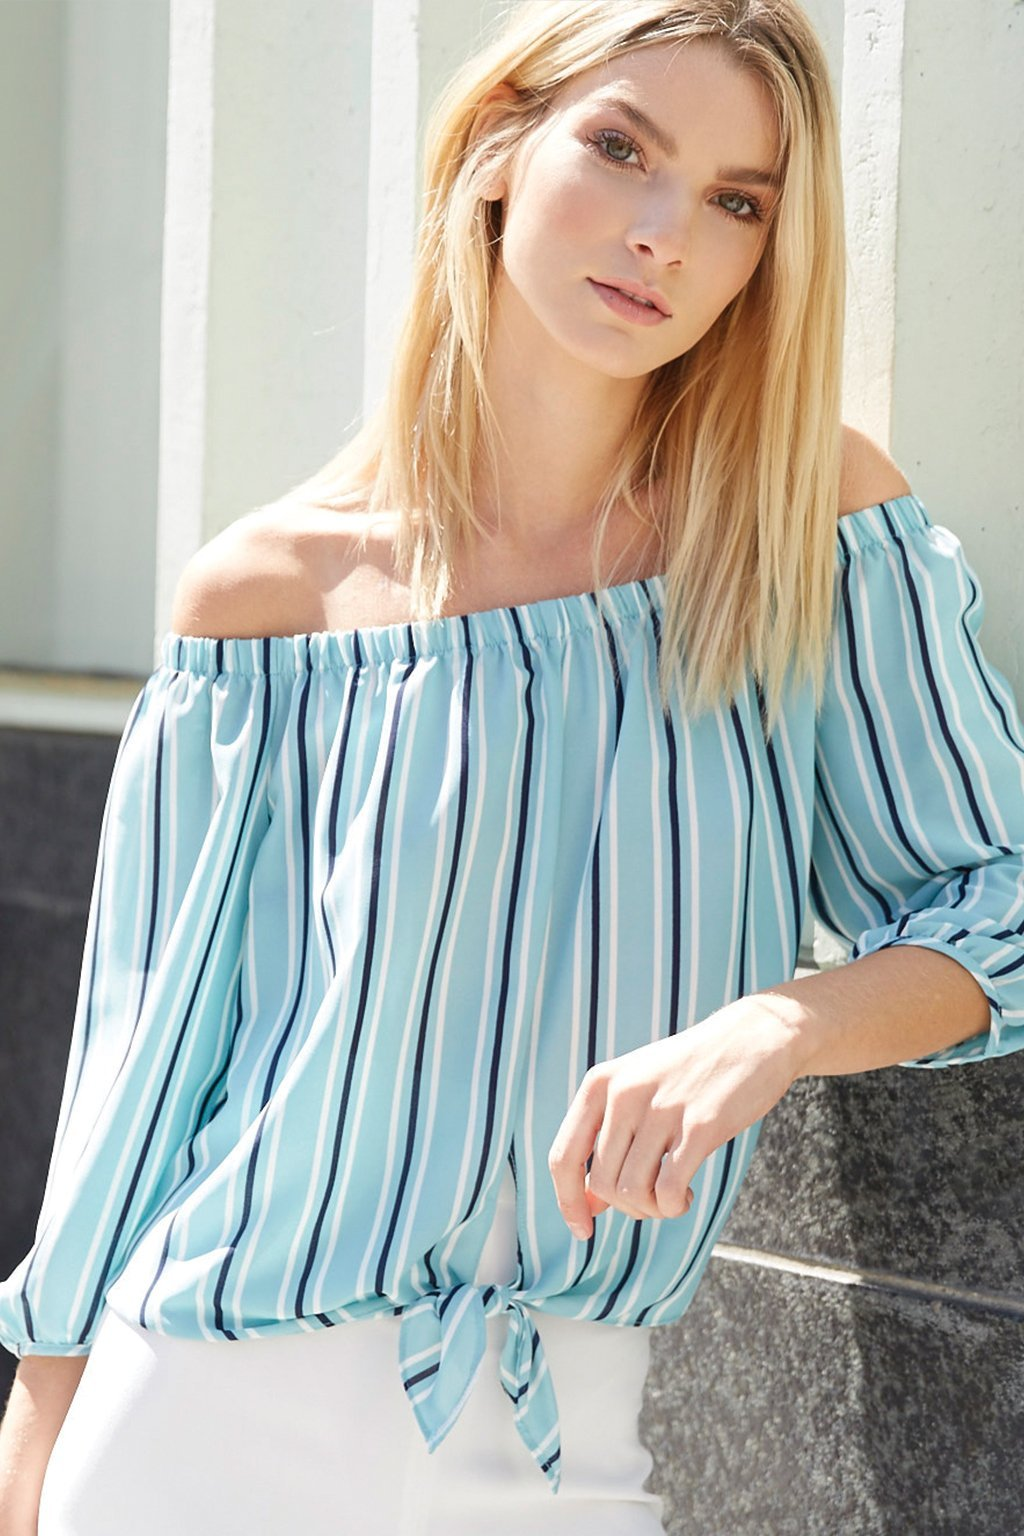 Poshsquare Tops S / Mint Milan Striped Off the Shoulder Top